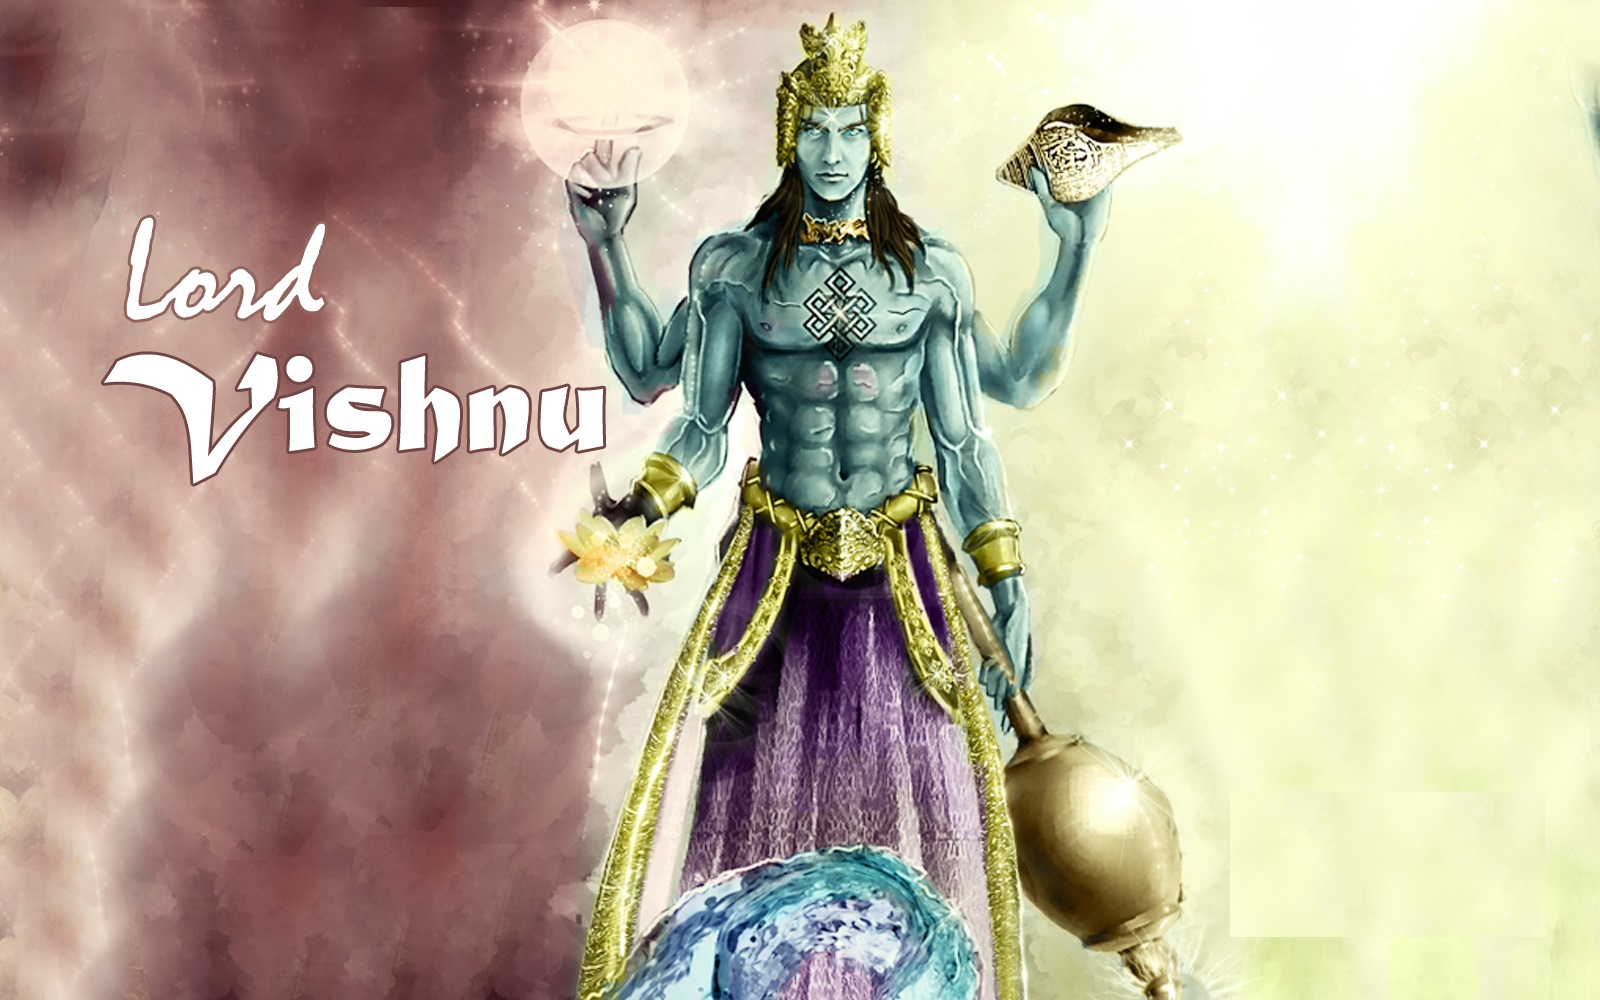 lord vishnu animated image